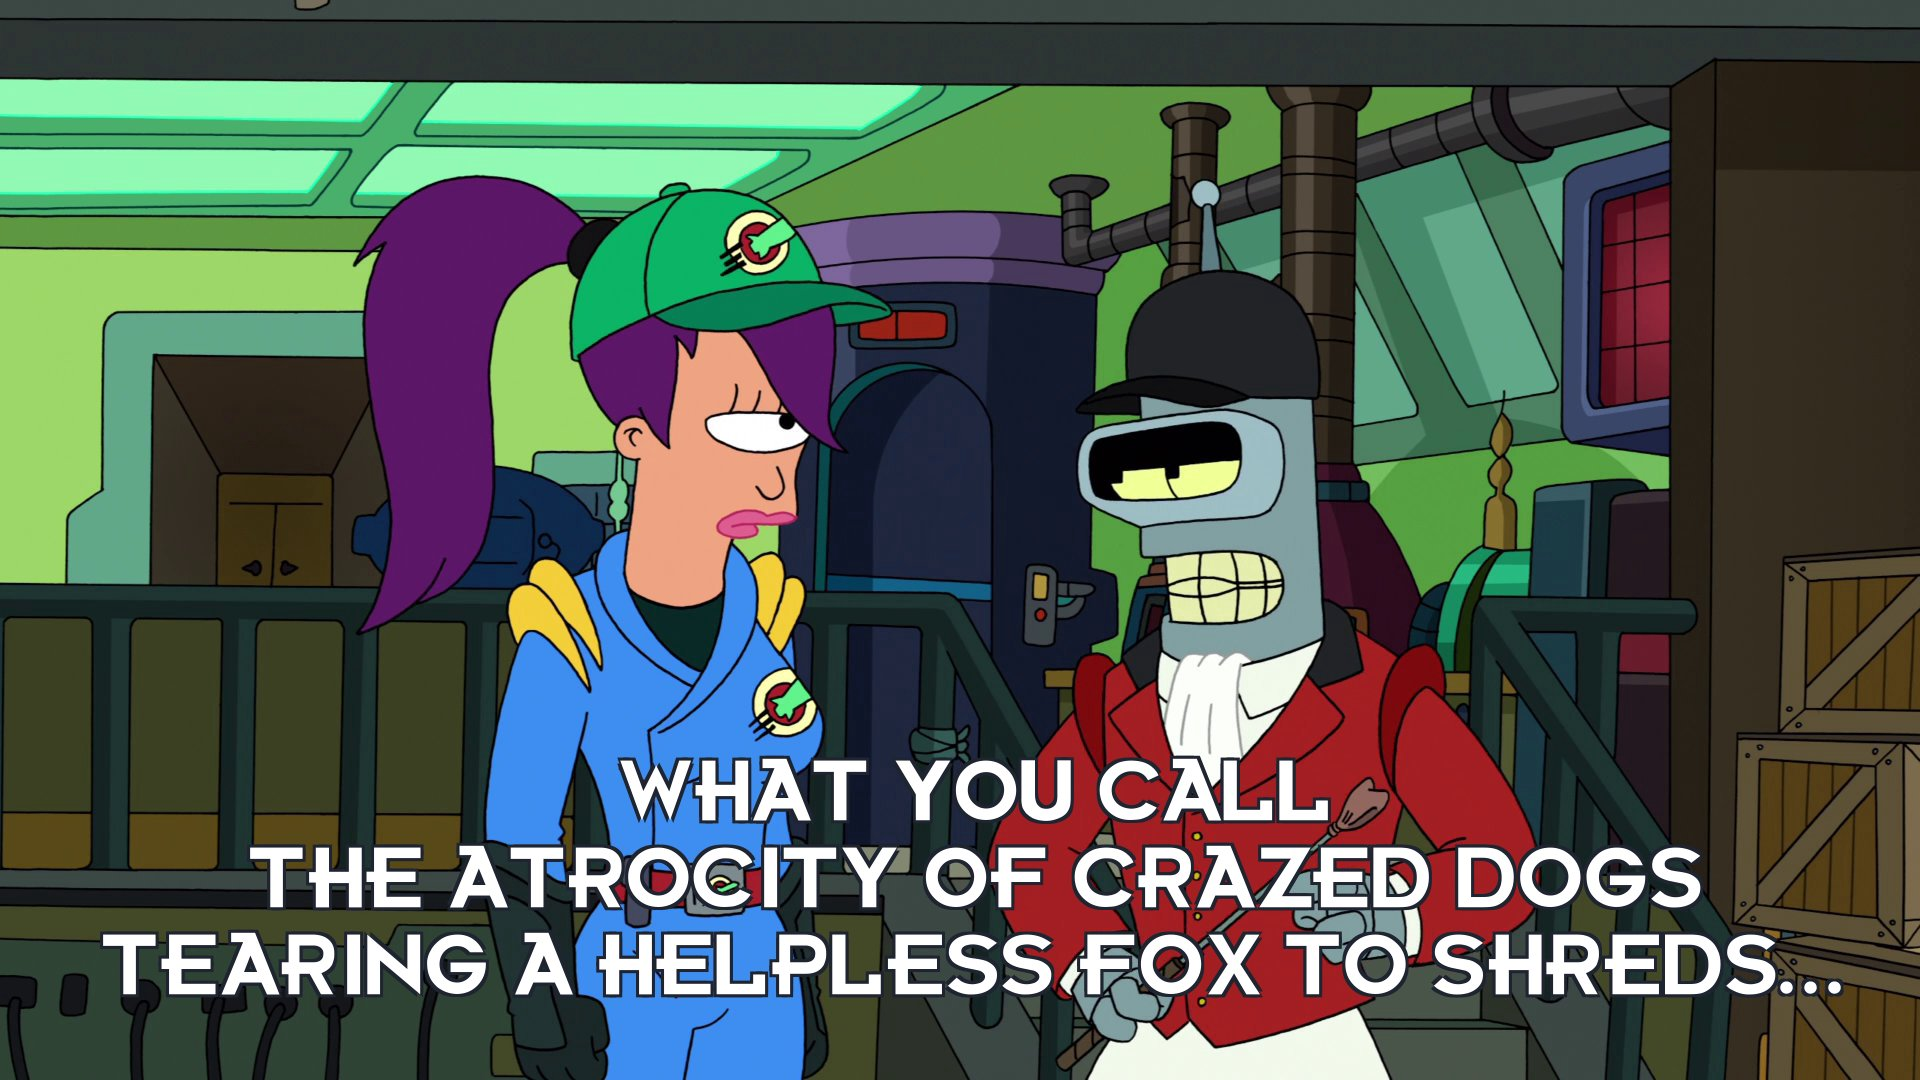 Bender Bending Rodriguez: What you call the atrocity of crazed dogs tearing a helpless fox to shreds...